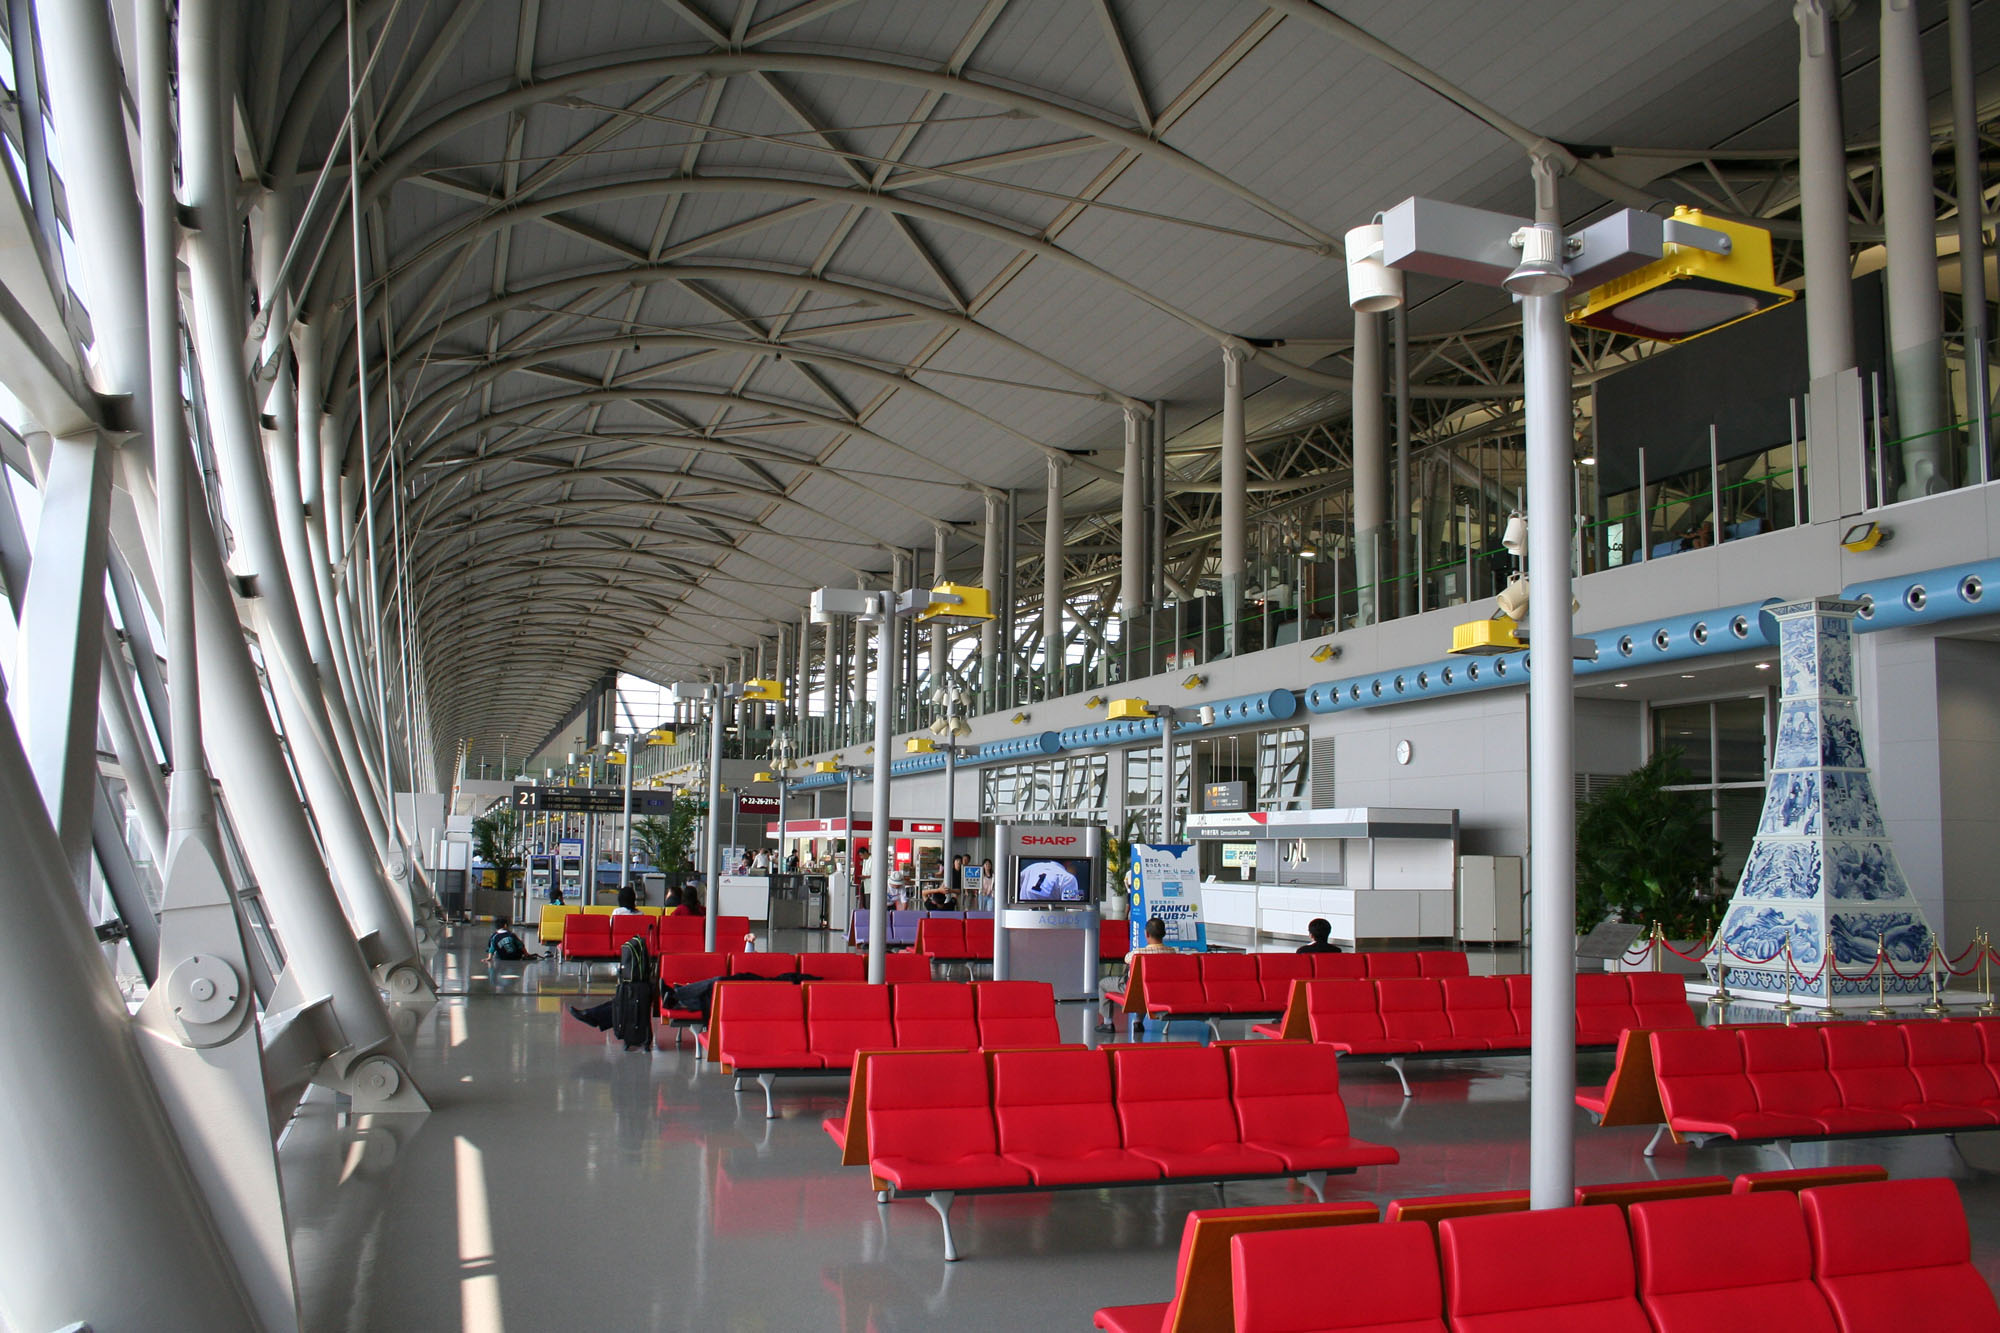 The inside view of an airport terminal building